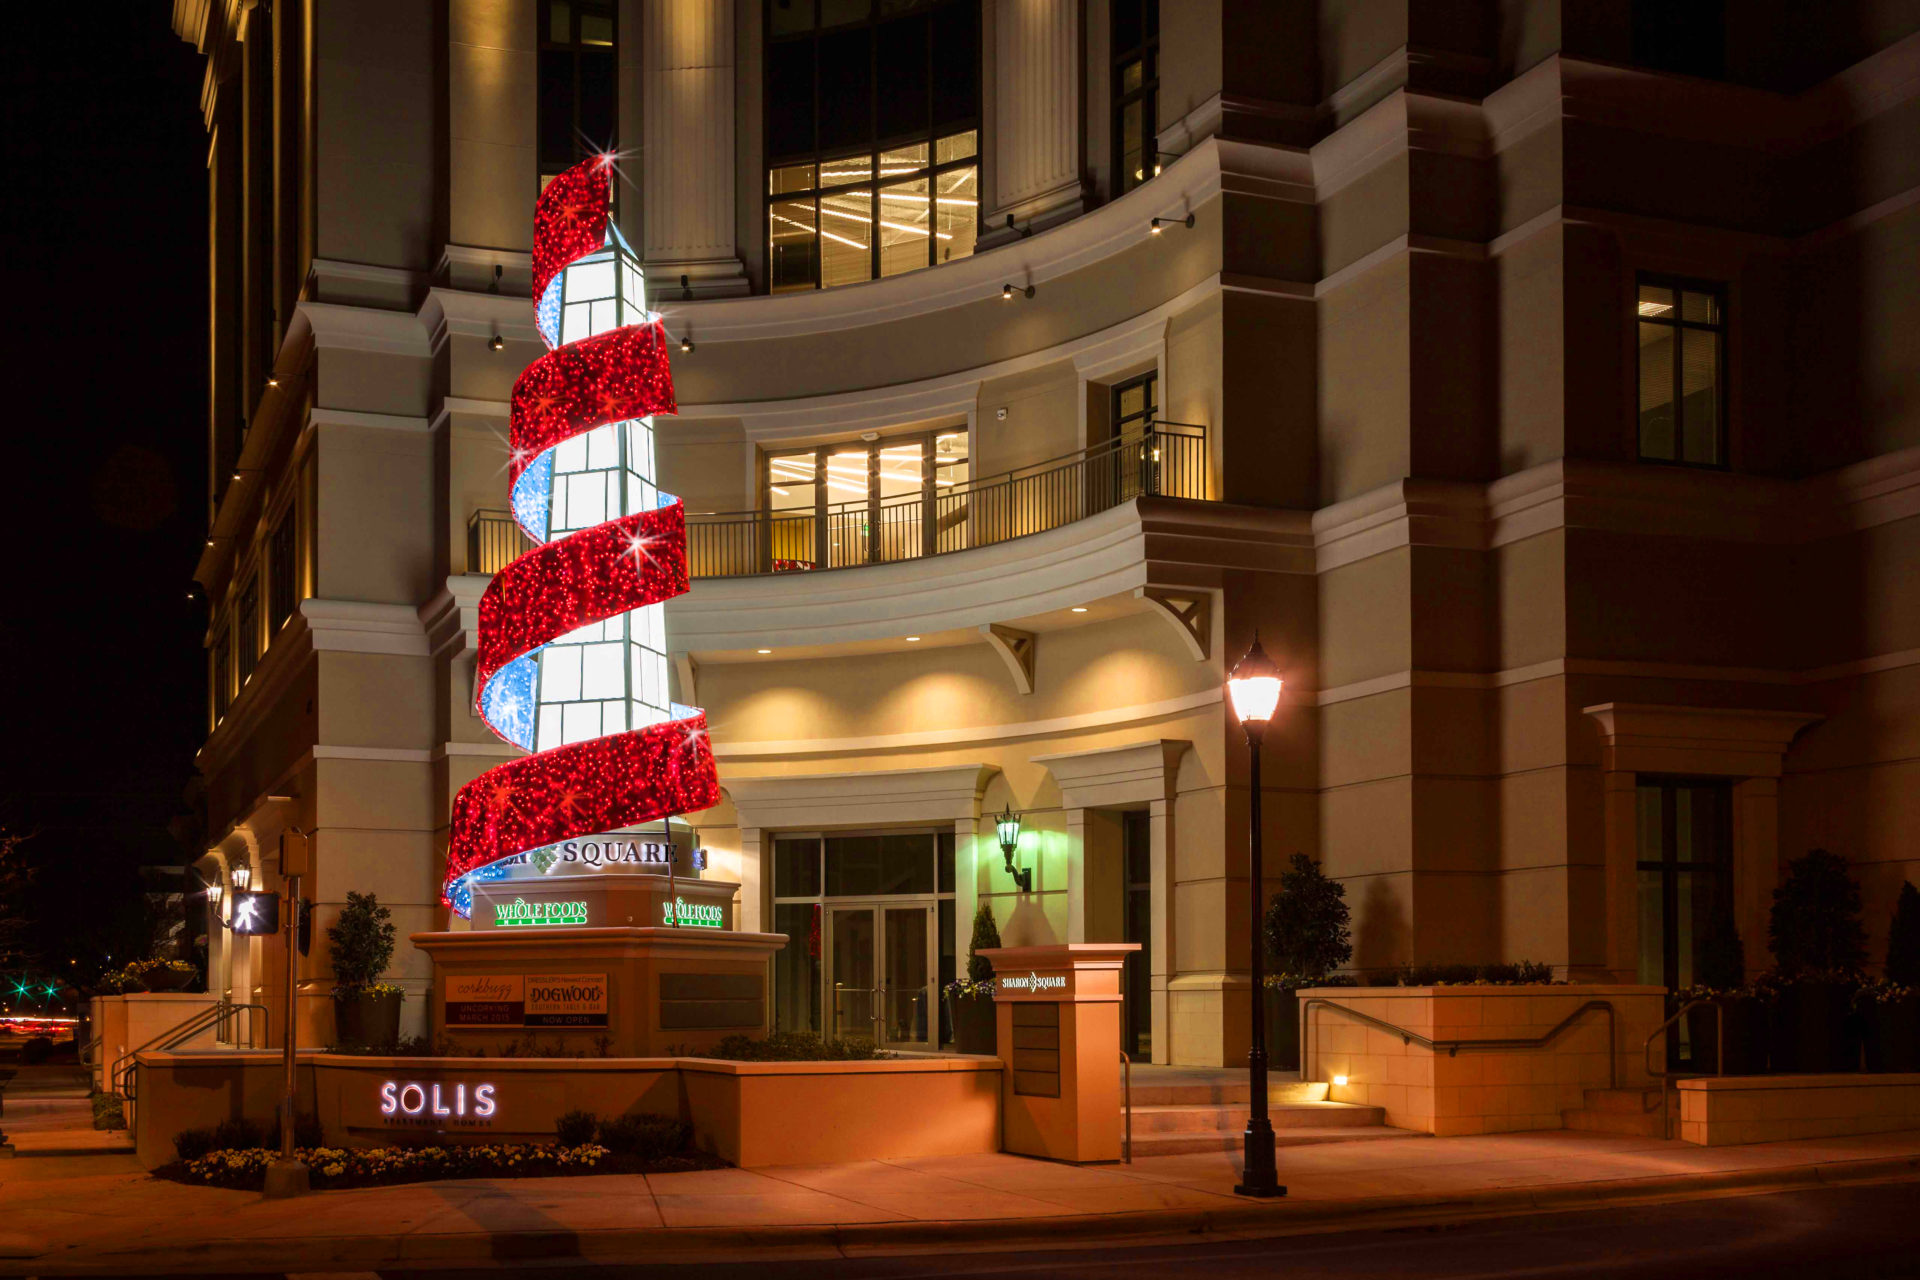 Custom Commercial Christmas Display for Mixed Use Property